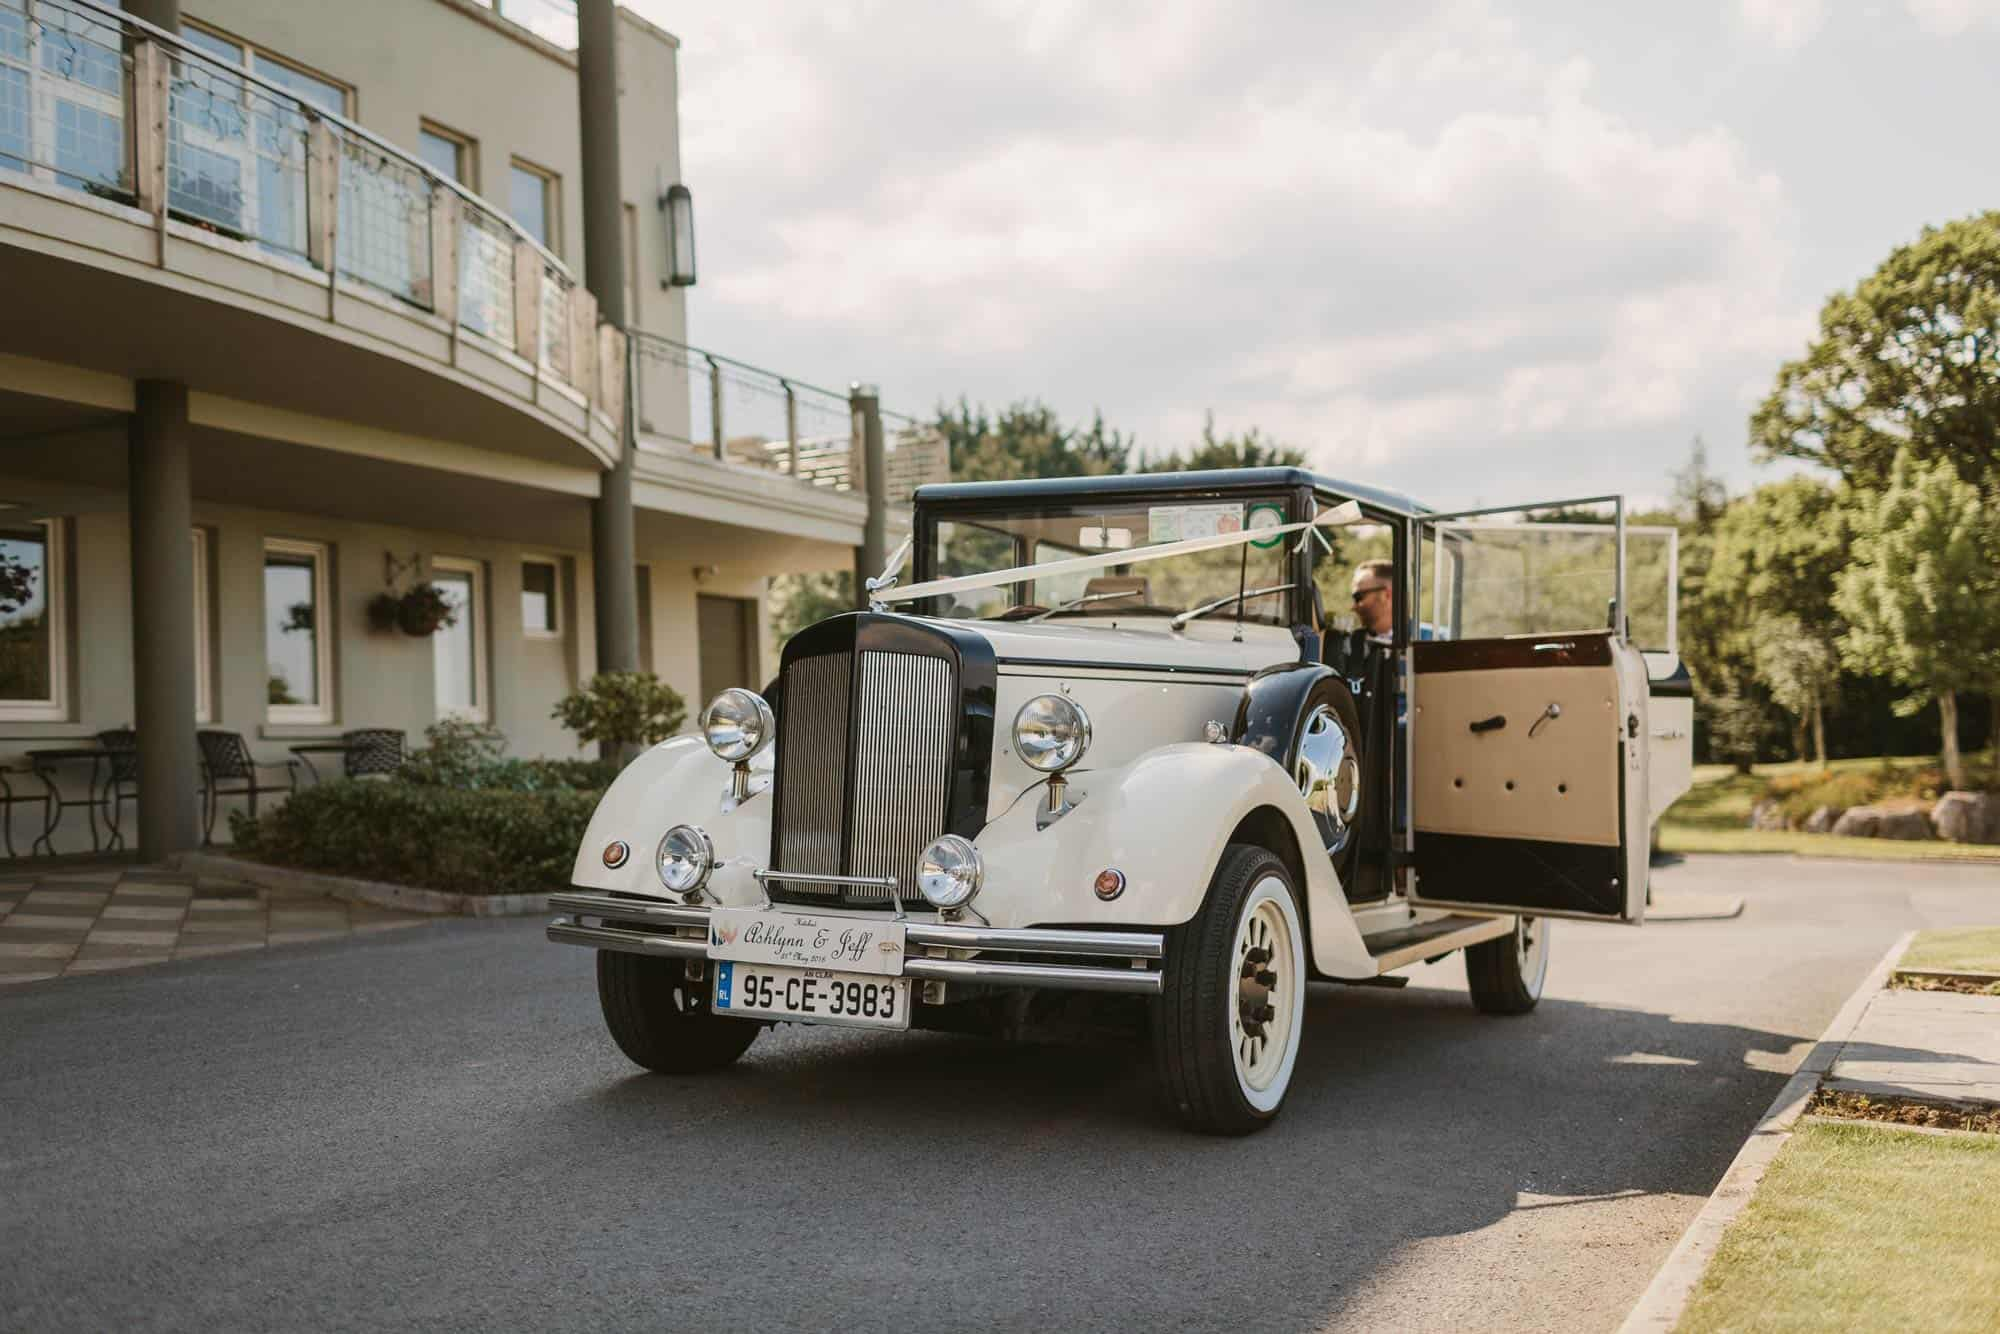 Elopement videographer Ireland, vintage car